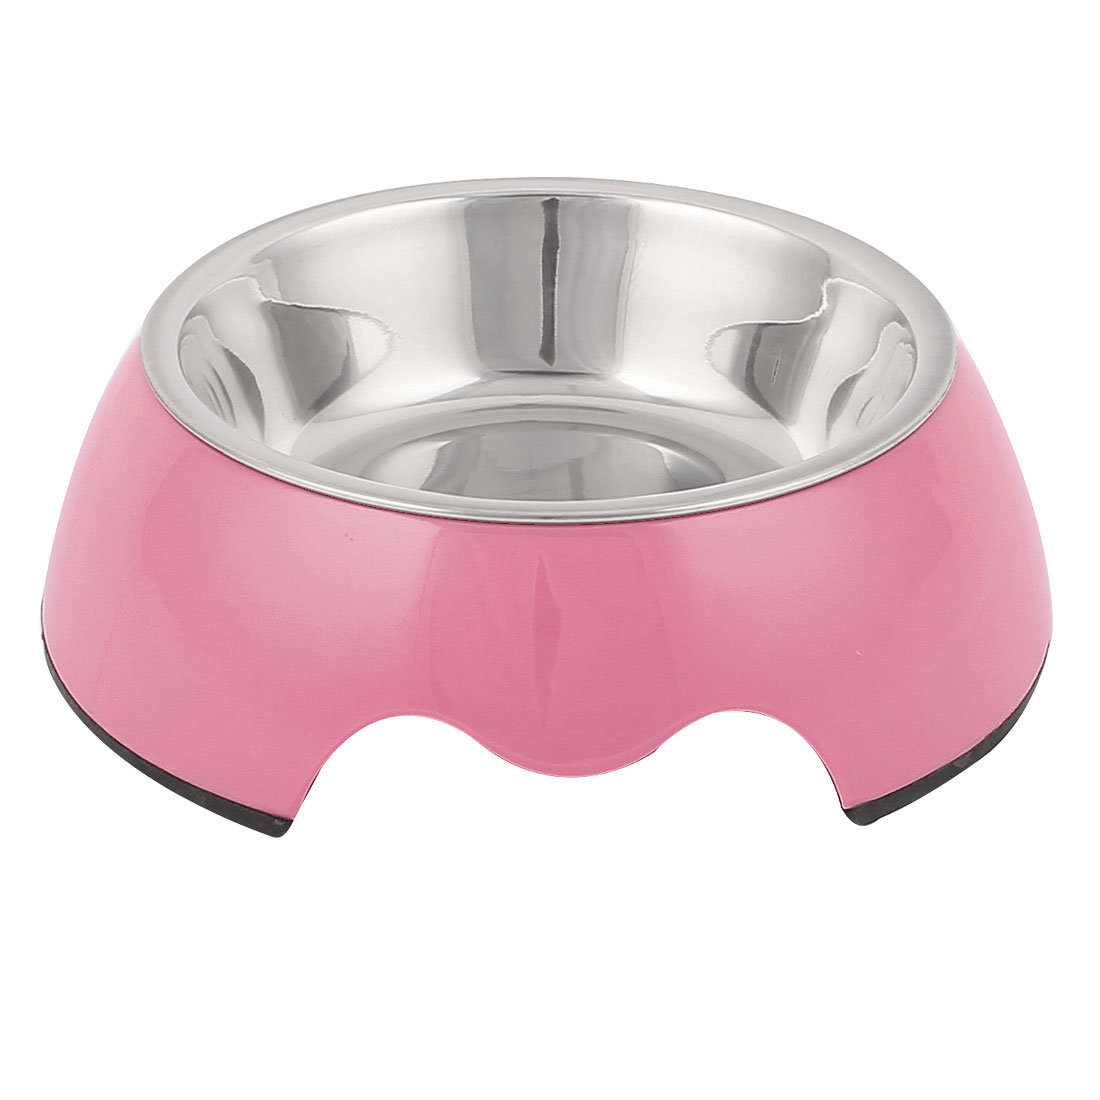 Pet Cat Dog Doggie Stainless Steel Dish Food Water Feeding Feeder Bowl Pink